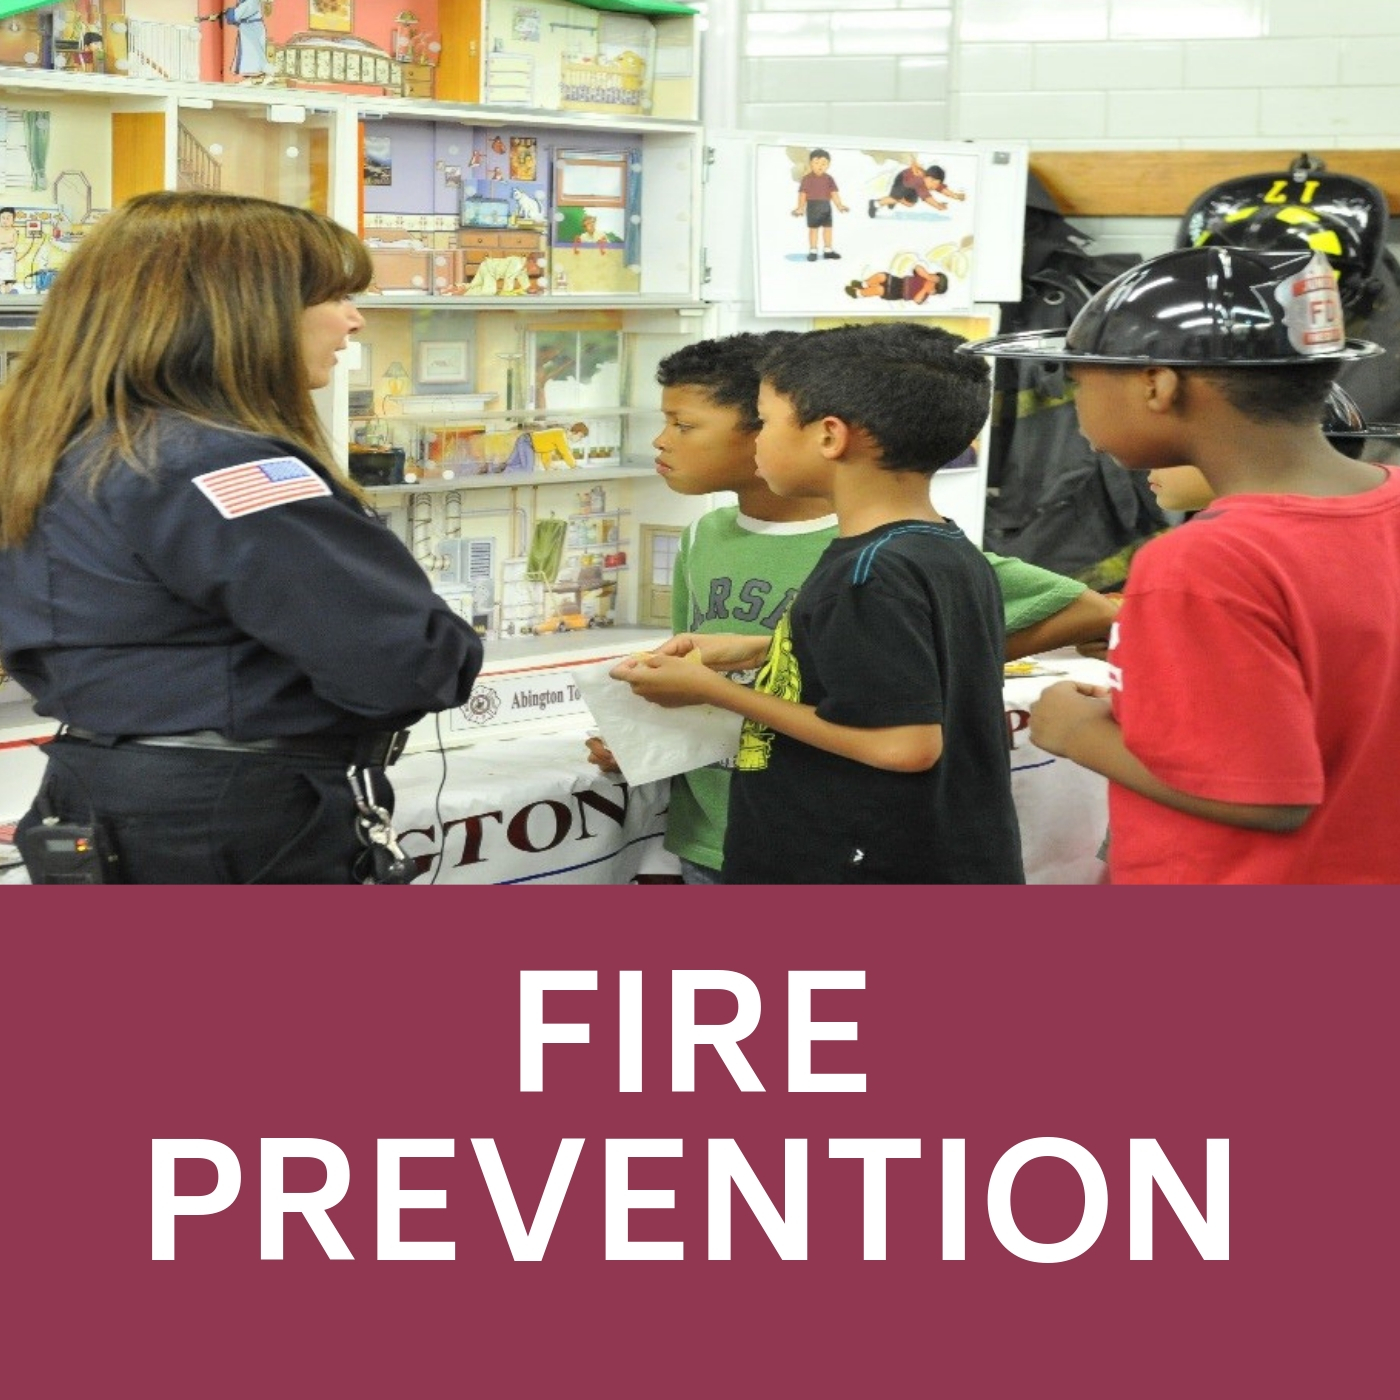 Students learning about fire safety that links to the Fire prevention web-page.